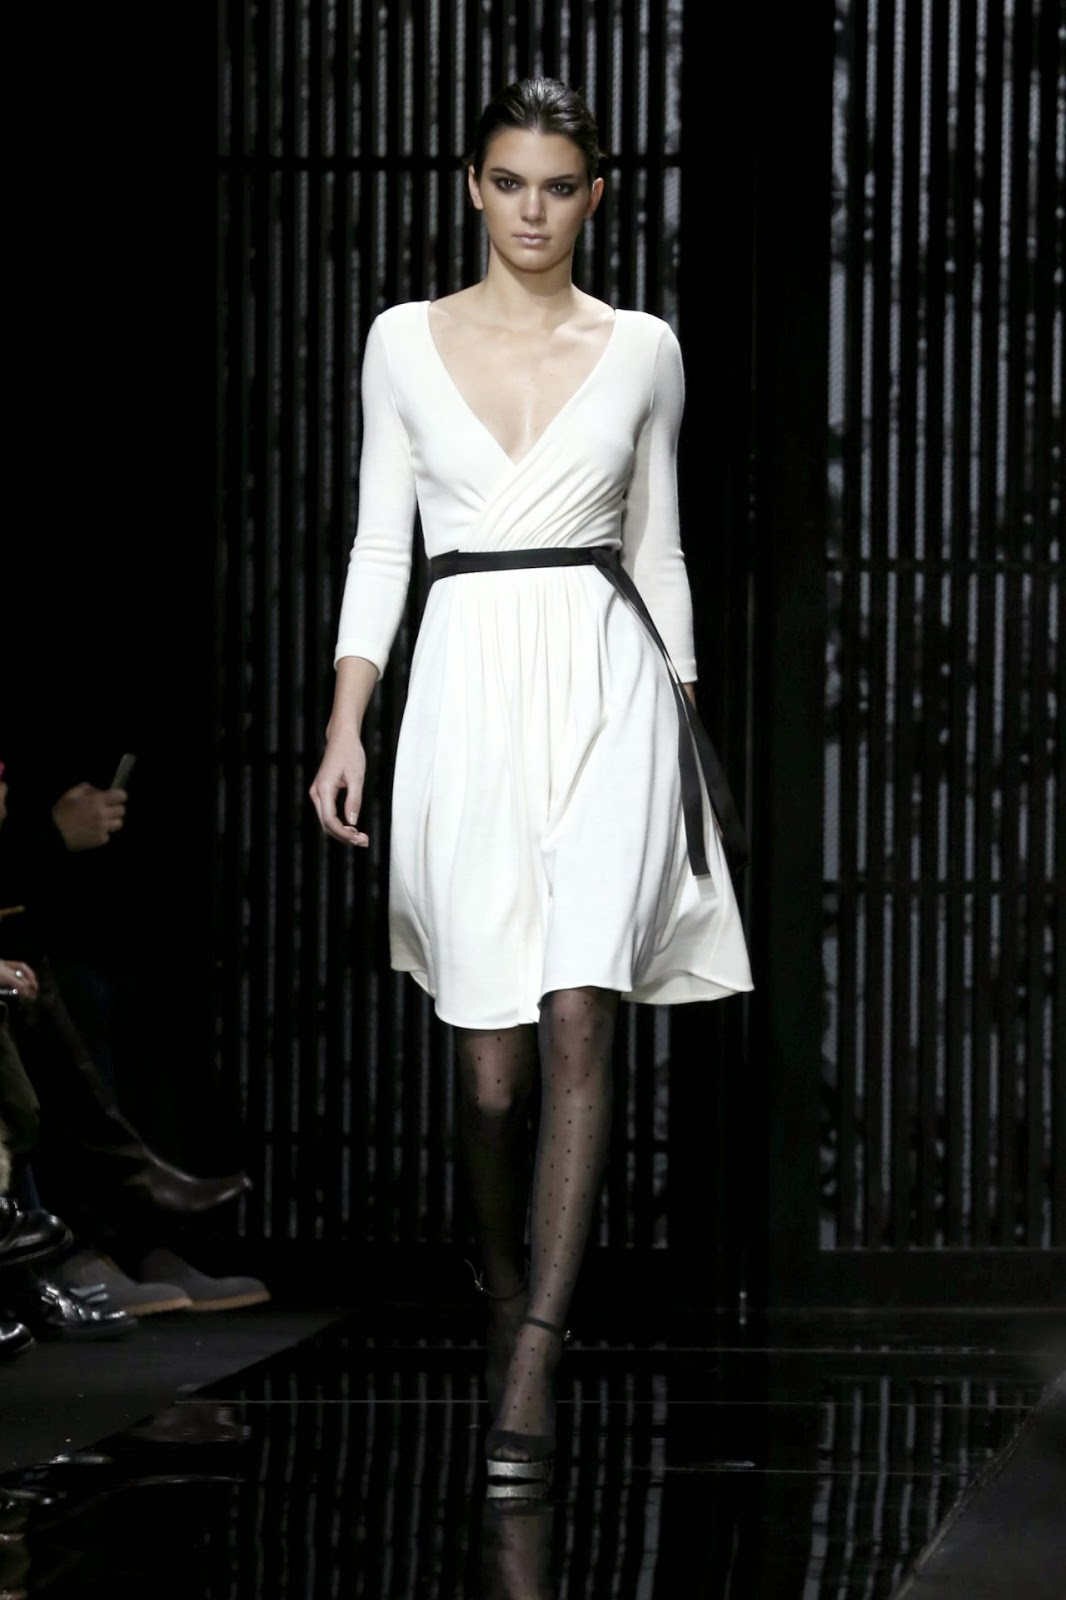 Kendall Jenner Is Classy In White At The Diane Von